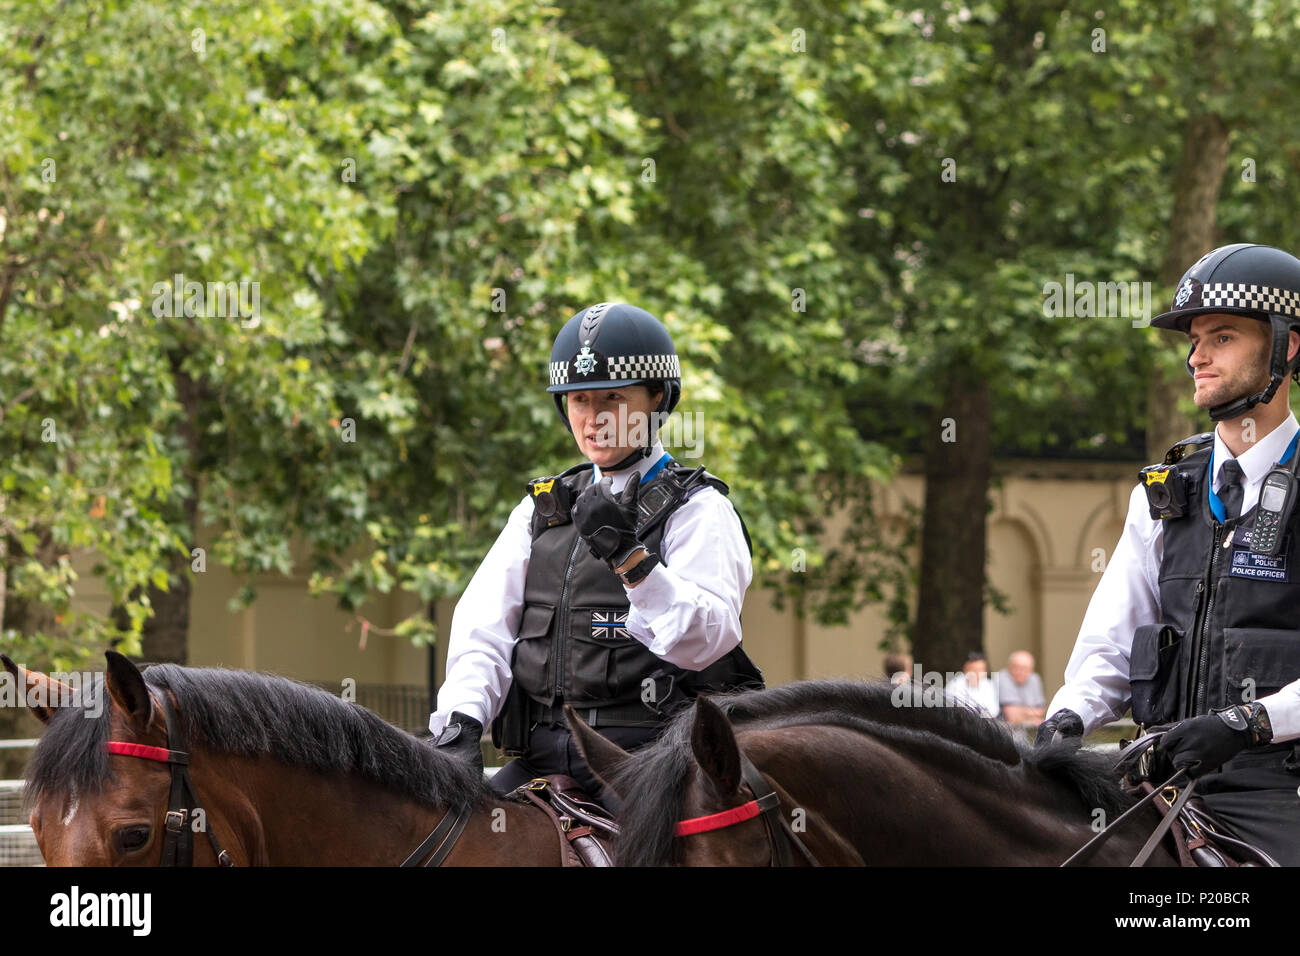 Mounted Police of The Metropolitan Police Mounted Branch at The 2108 Trooping Of The Colour Ceremony - Stock Image